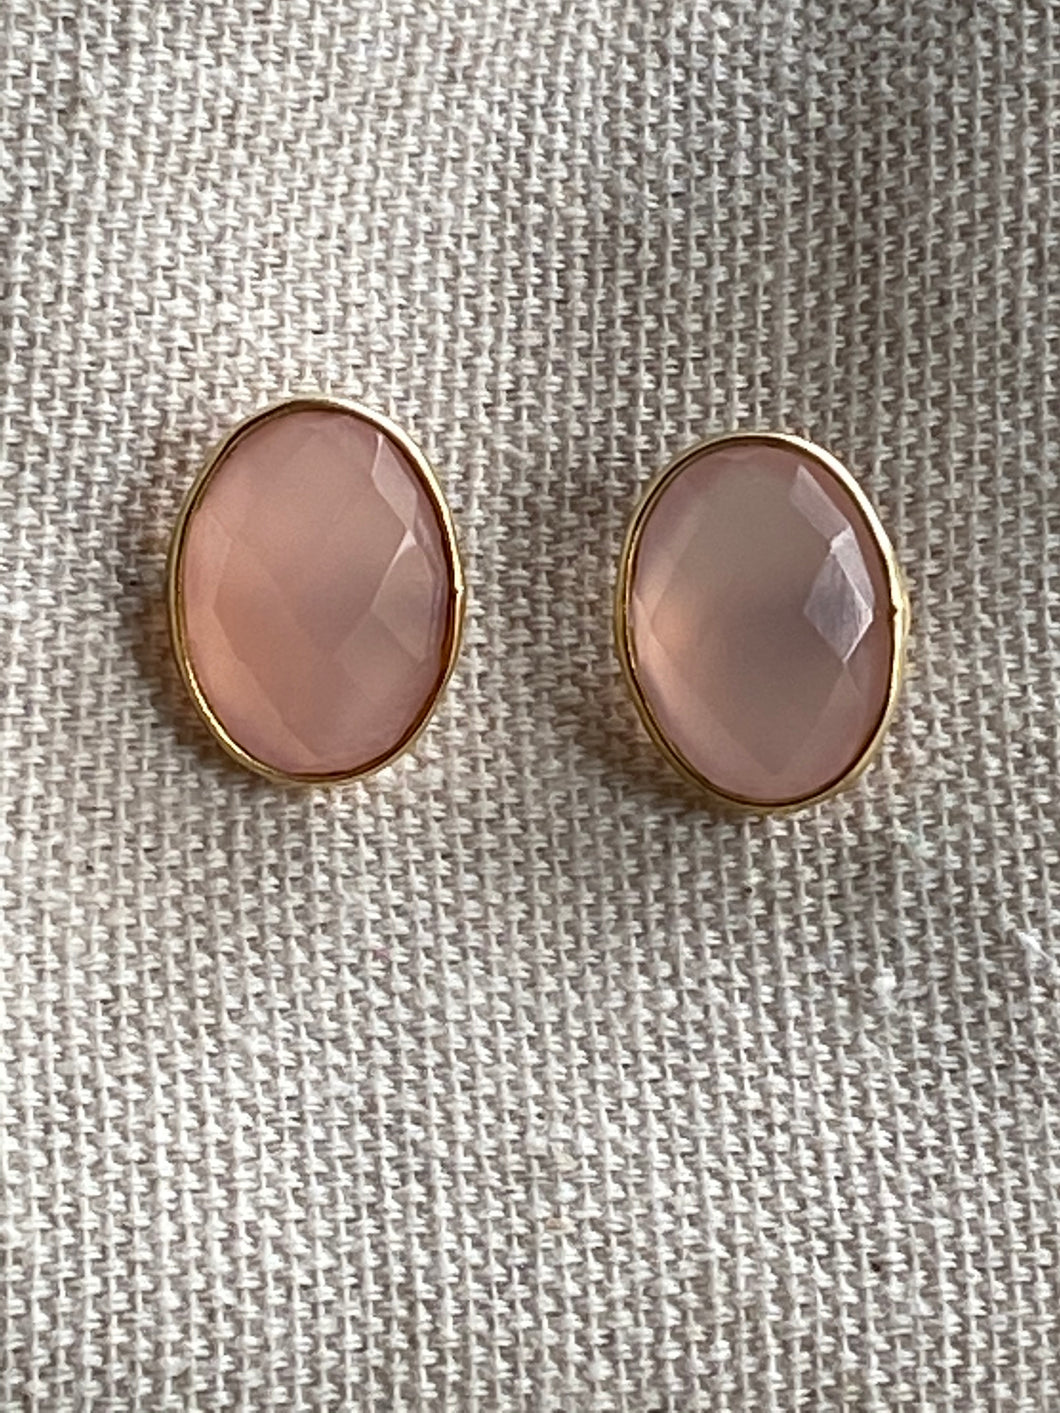 Rose Quartz Gold on Silver Studs - Full Moon Designs